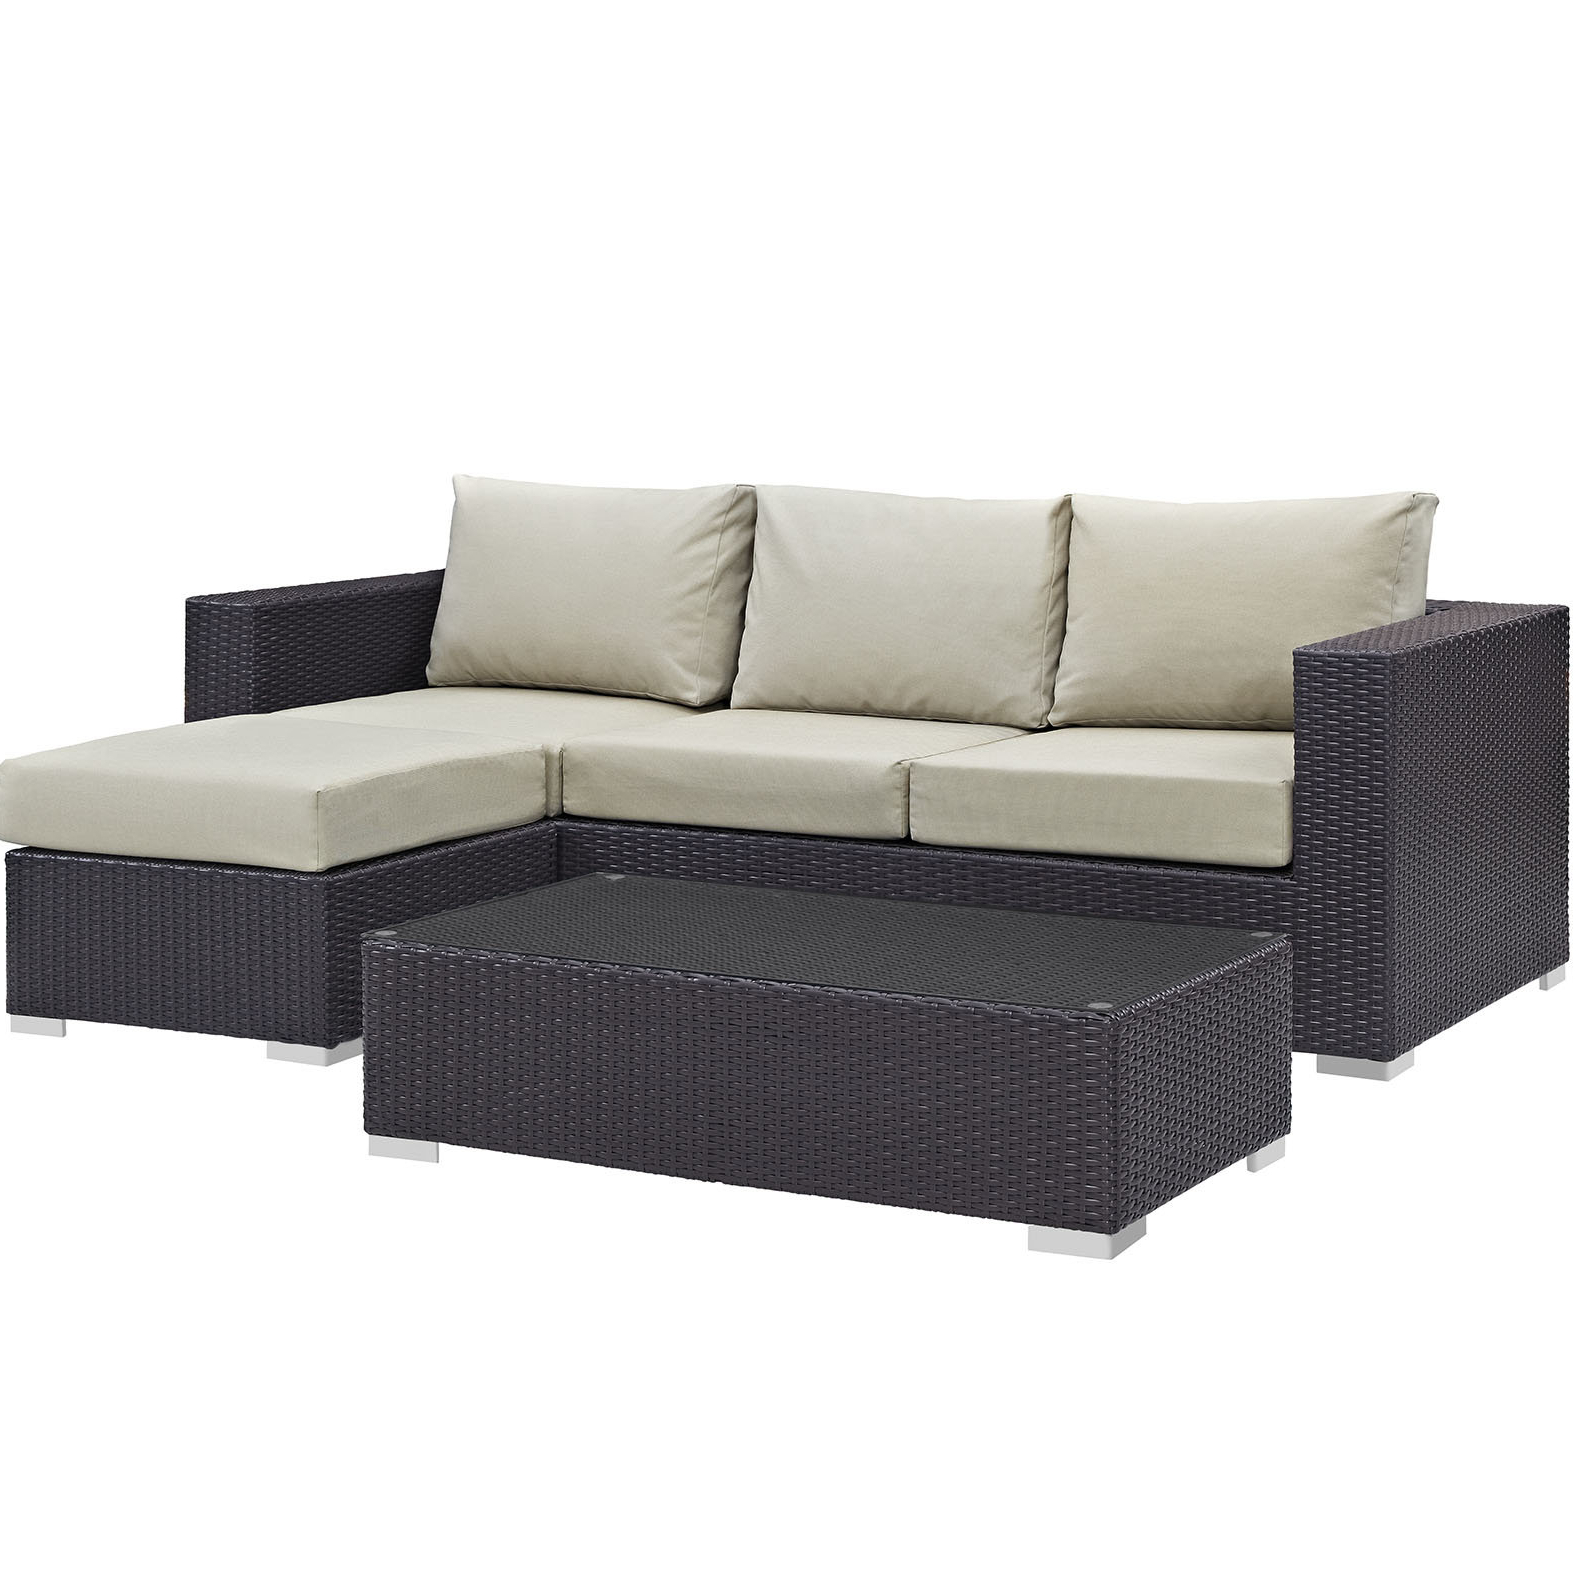 Best And Newest Brentwood Patio Sofas With Cushions In Brentwood 3 Piece Rattan Sectional Seating Group With Cushion (View 3 of 18)